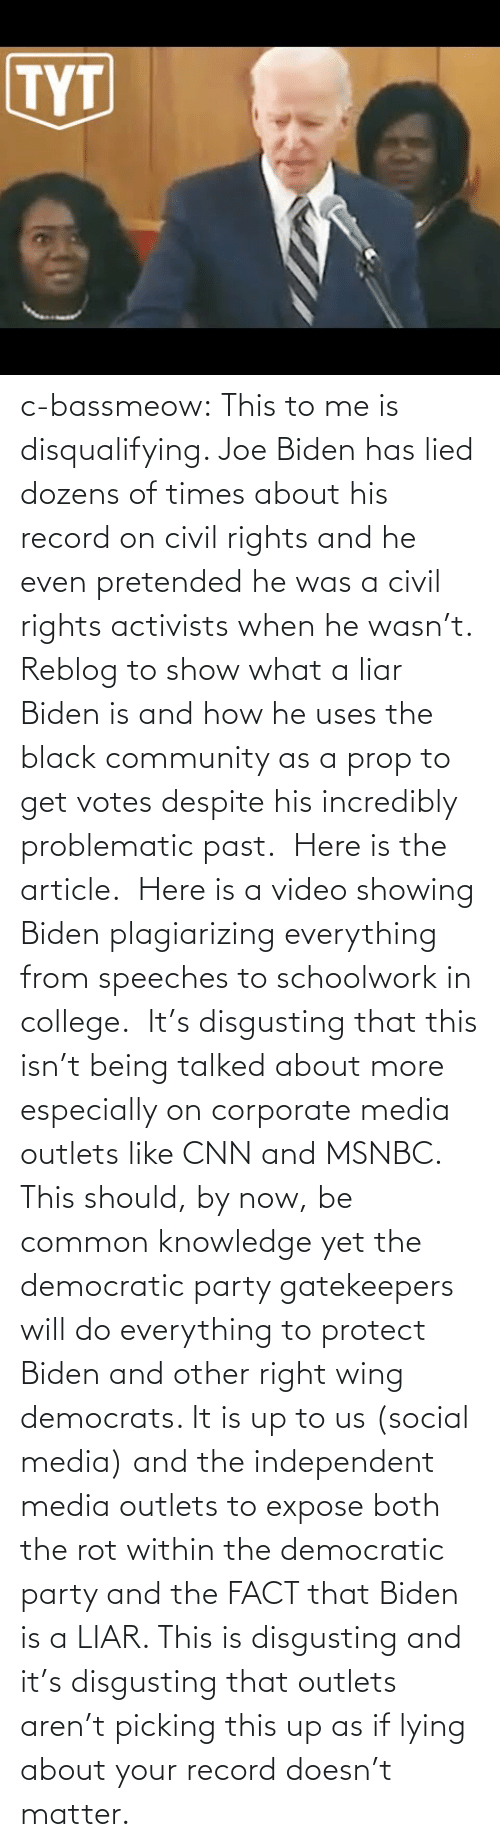 cnn.com, College, and Community: c-bassmeow: This to me is disqualifying. Joe Biden has lied dozens of times about his record on civil rights and he even pretended he was a civil rights activists when he wasn't. Reblog to show what a liar Biden is and how he uses the black community as a prop to get votes despite his incredibly problematic past.   Here is the article.   Here is a video showing Biden plagiarizing everything from speeches to schoolwork in college.   It's disgusting that this isn't being talked about more especially on corporate media outlets like CNN and MSNBC. This should, by now, be common knowledge yet the democratic party gatekeepers will do everything to protect Biden and other right wing democrats. It is up to us (social media) and the independent media outlets to expose both the rot within the democratic party and the FACT that Biden is a LIAR. This is disgusting and it's disgusting that outlets aren't picking this up as if lying about your record doesn't matter.